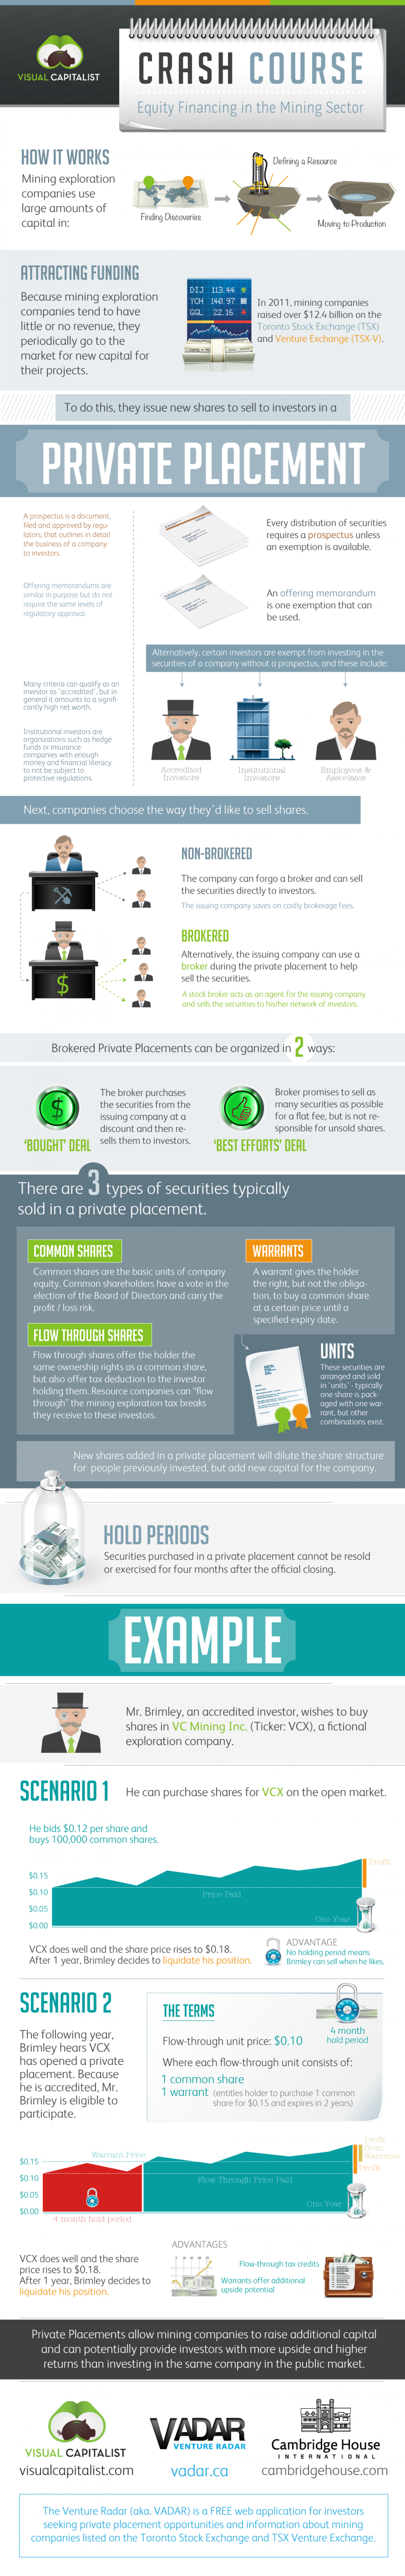 Crash Course: Equity Financing in the Mining Sector Infographic